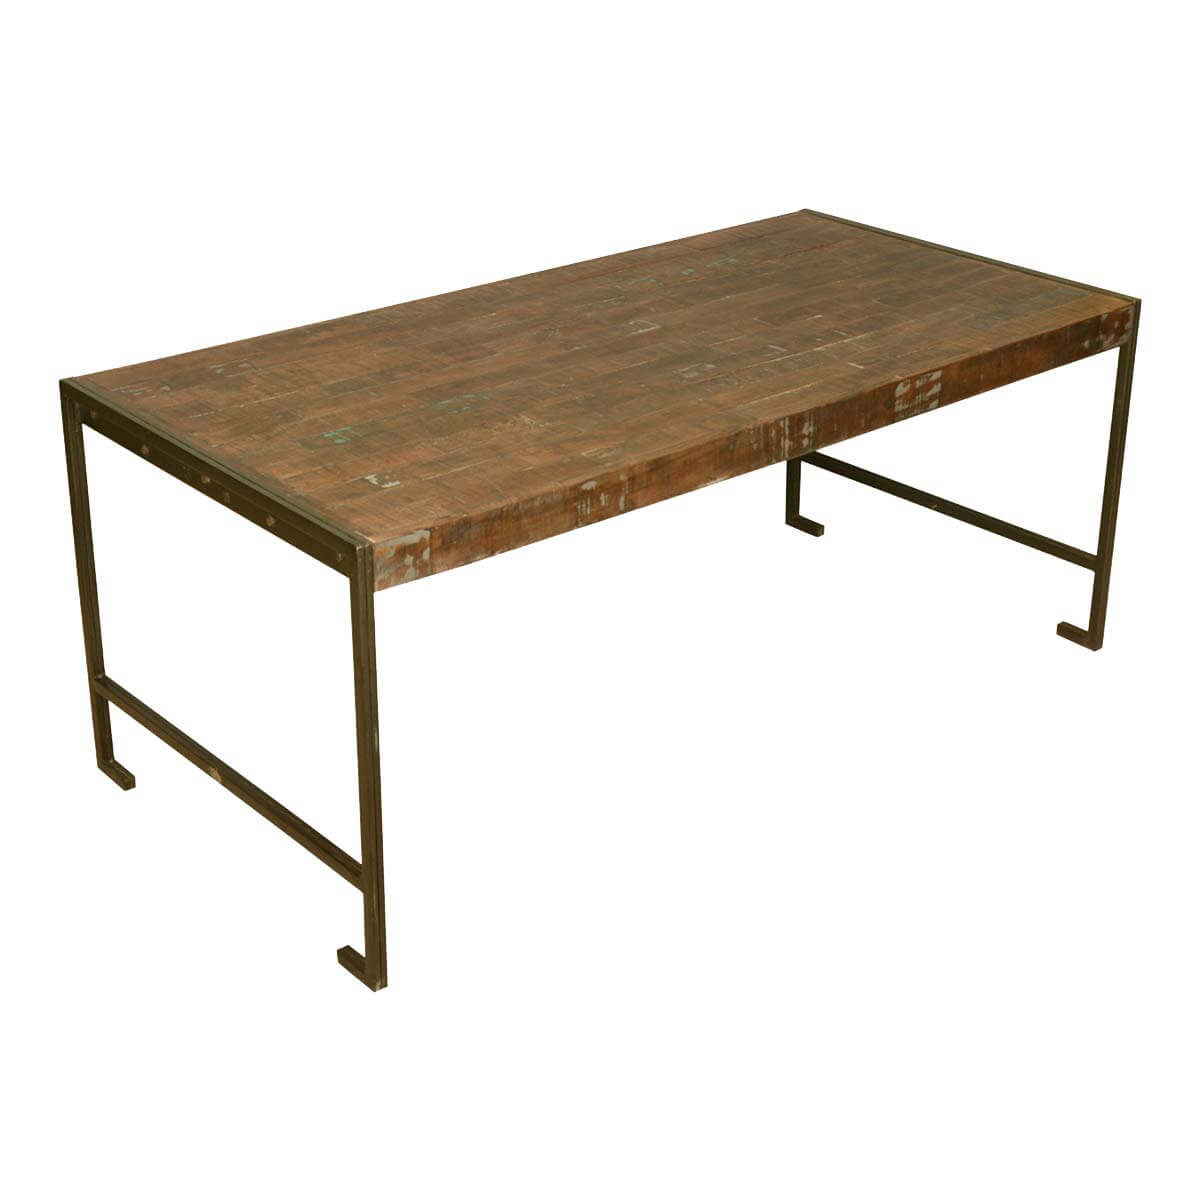 Rustic Wooden Dining Tables ~ Philadelphia modern rustic reclaimed wood industrial